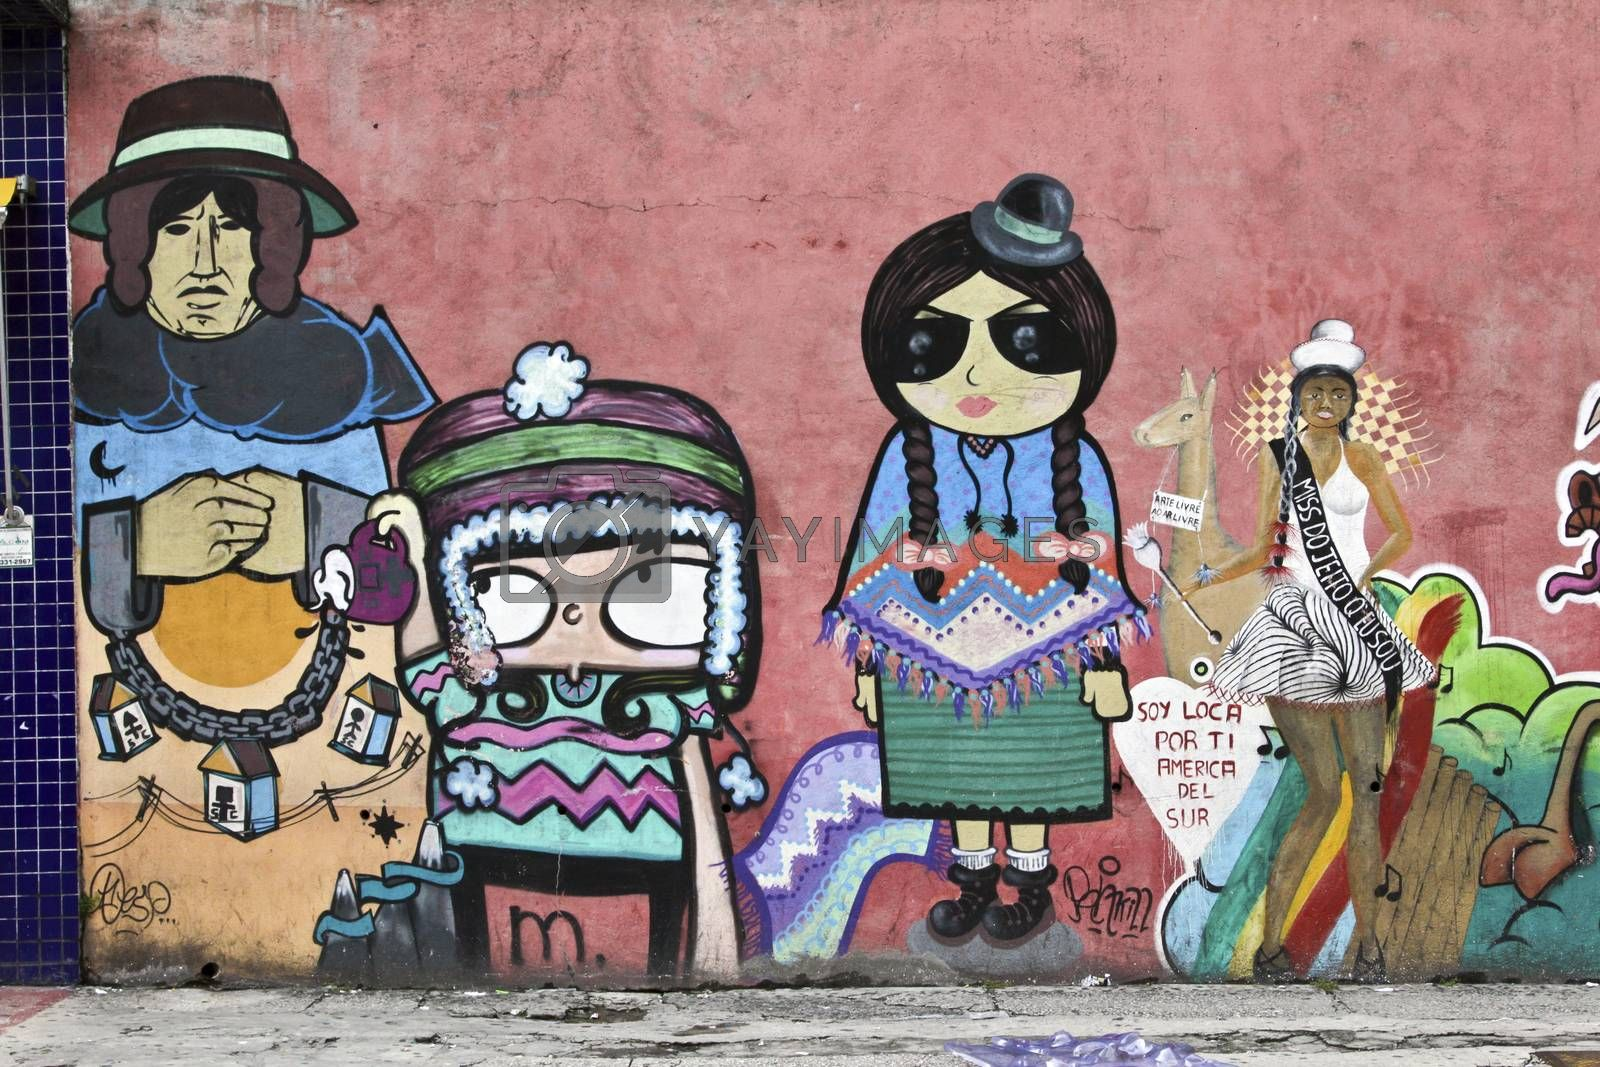 SAO PAULO, BRAZIL MARCH 8, 2015: A big and color mural on the wall in the streets of Sao Paulo Brazil.